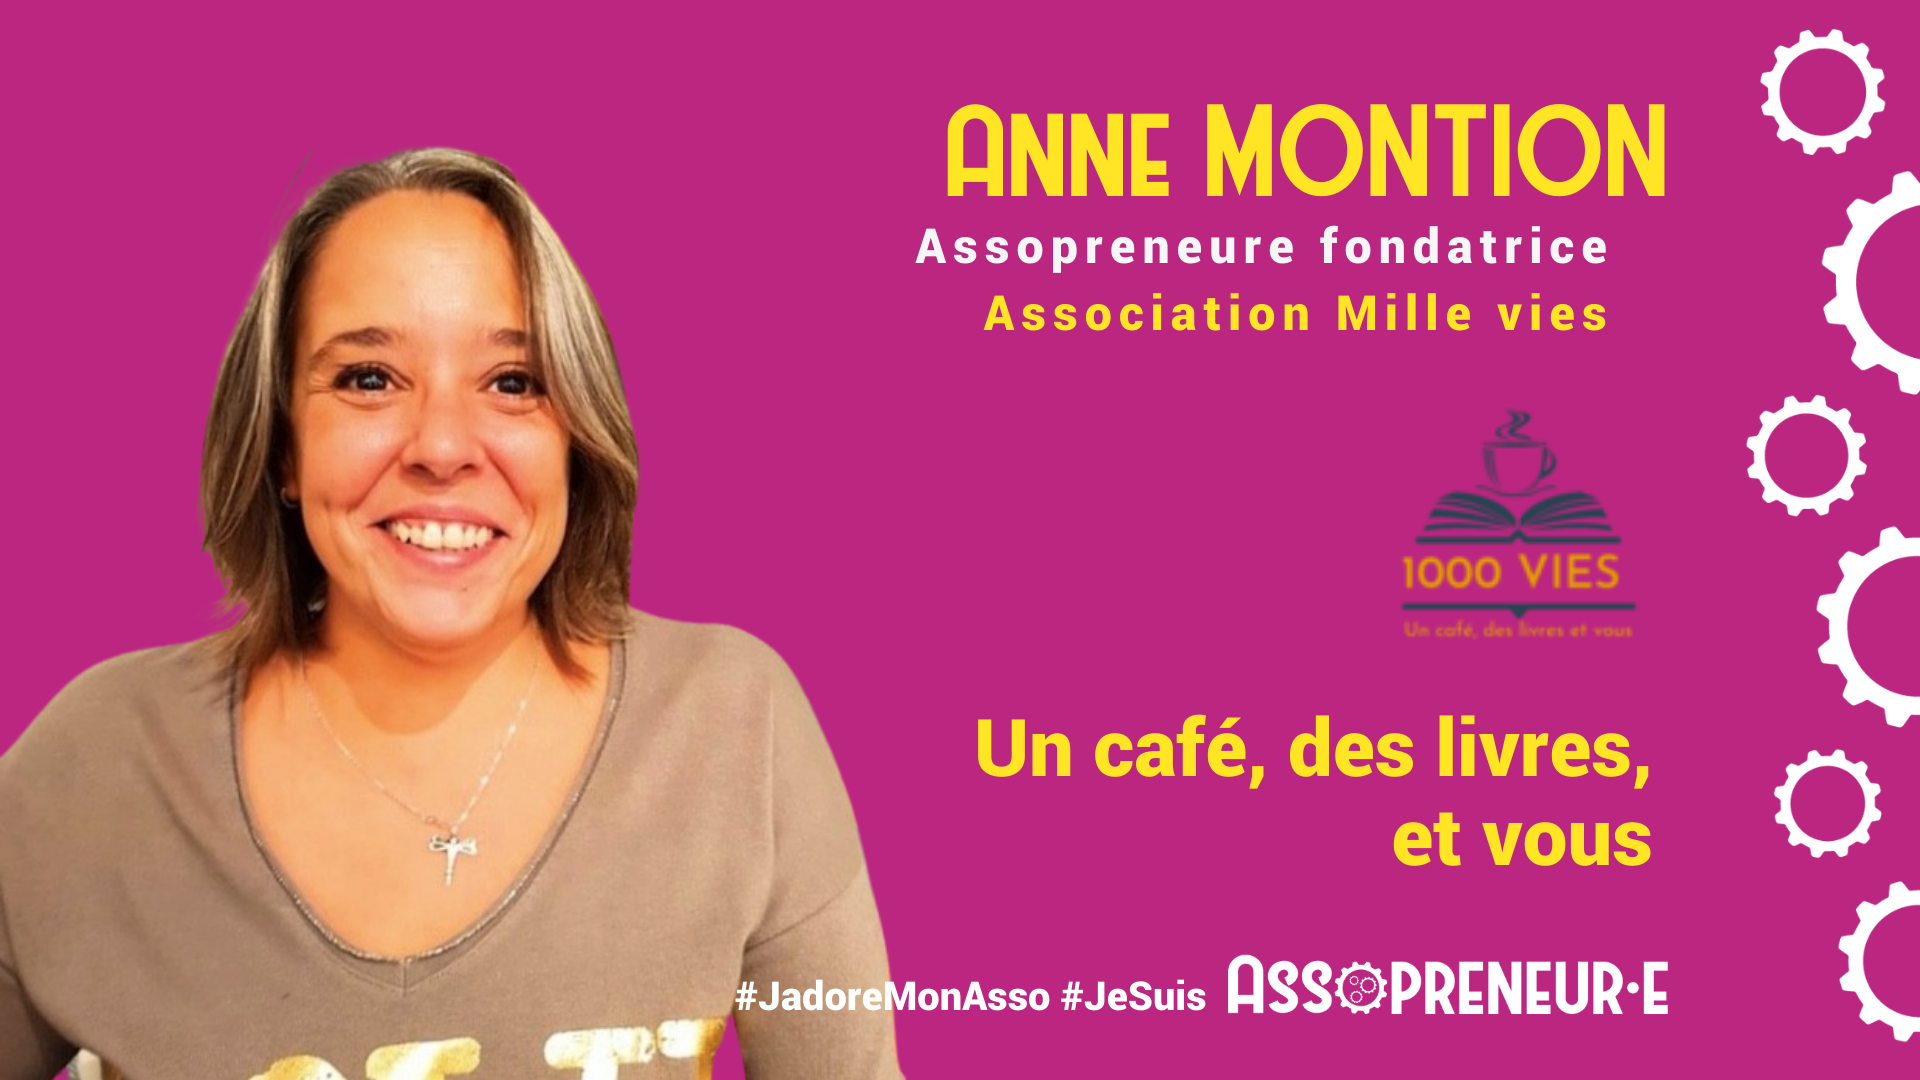 Anne Montion membre programme Assopreneur